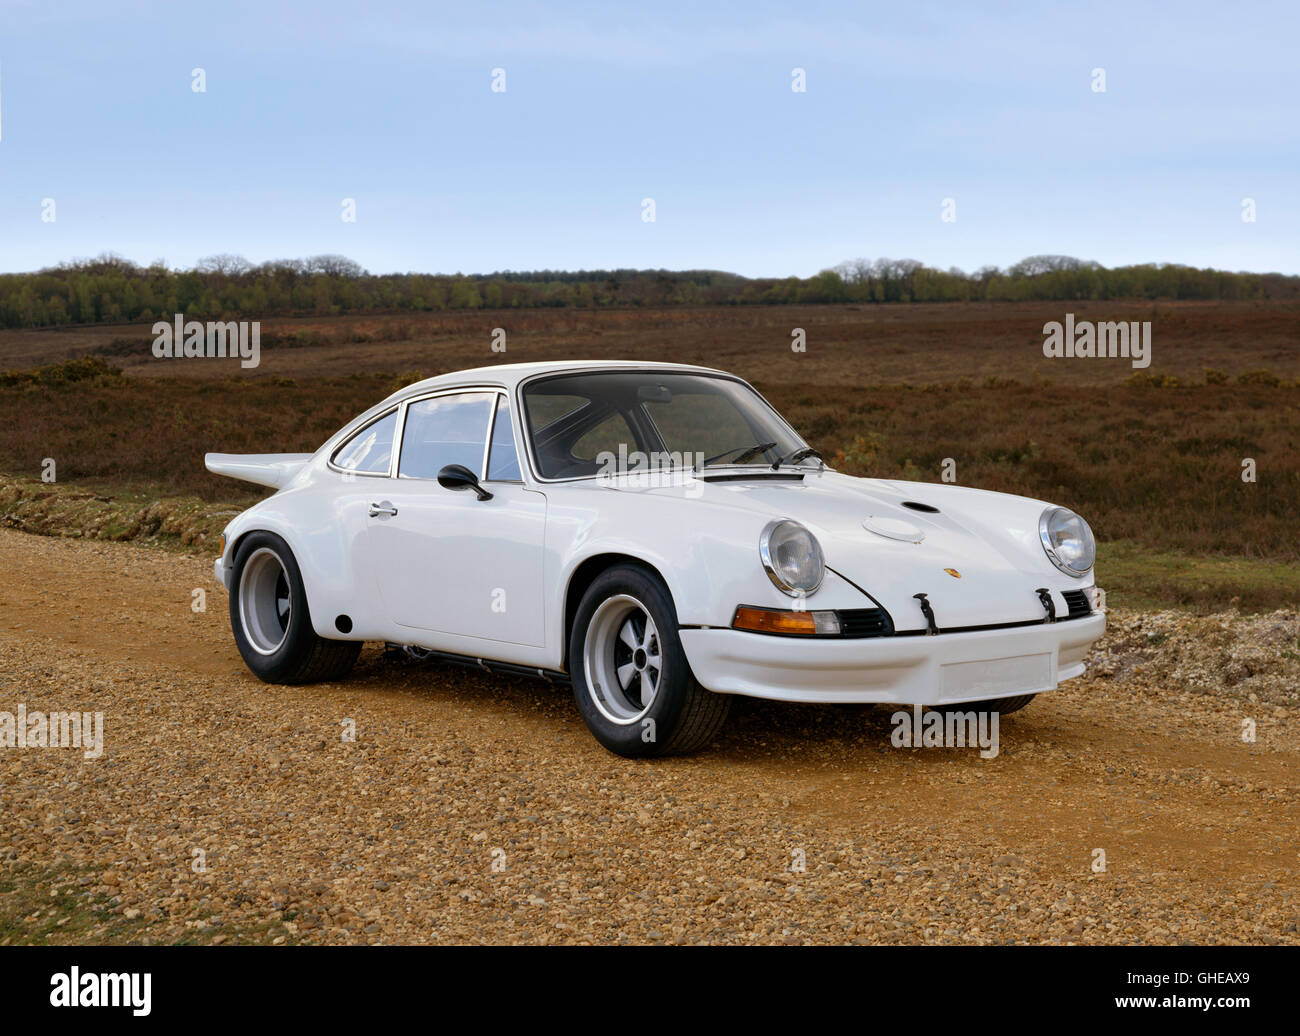 1973 Kremer Porsche RS/RSR 2.8 litre competition coupe. Country of origin Germany. - Stock Image